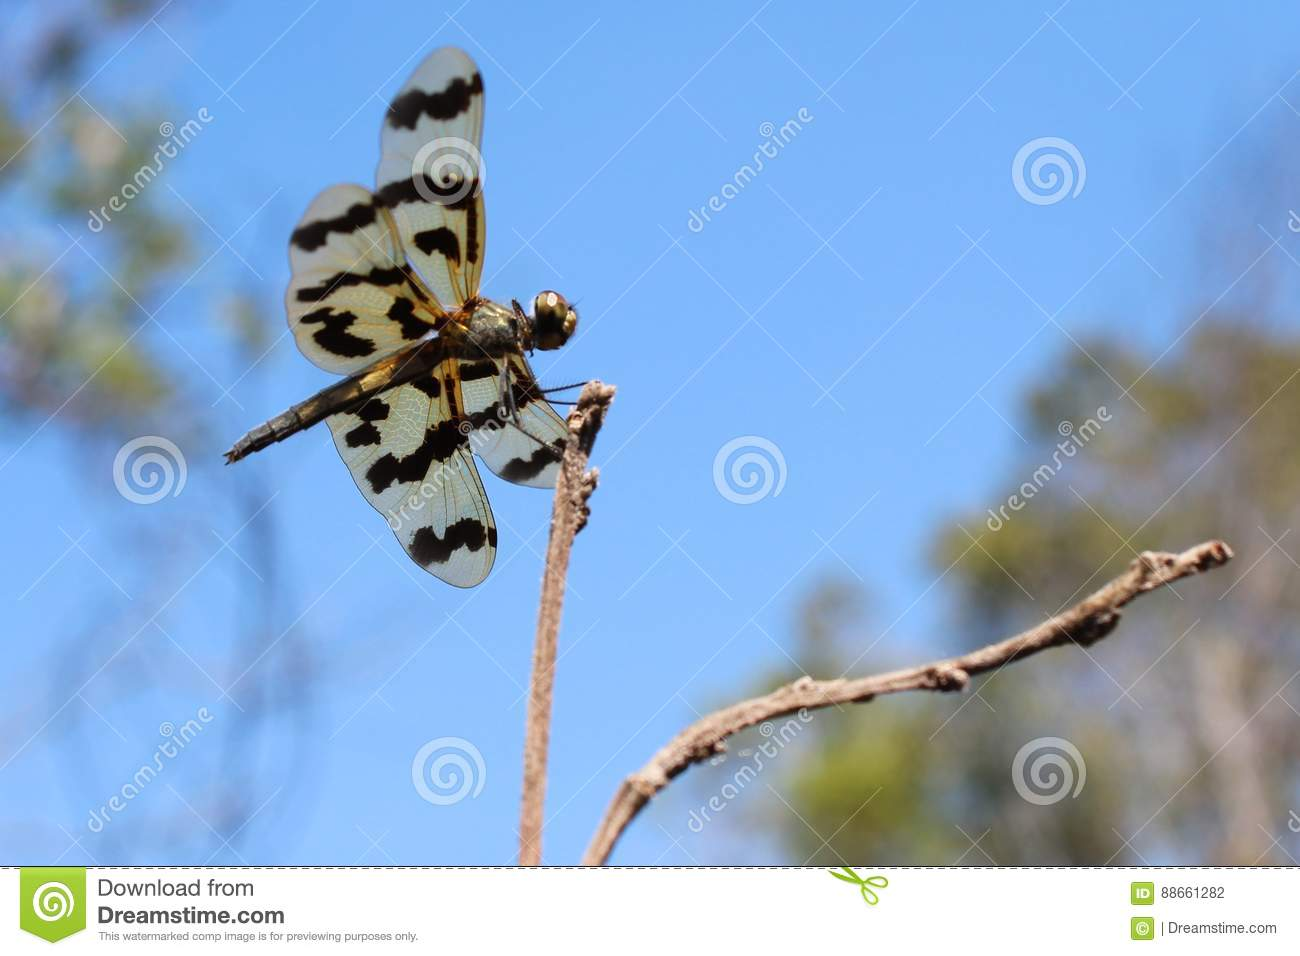 The Graphic Flutterer Dragonfly is resting on a branch in the Northern Territory of Australia